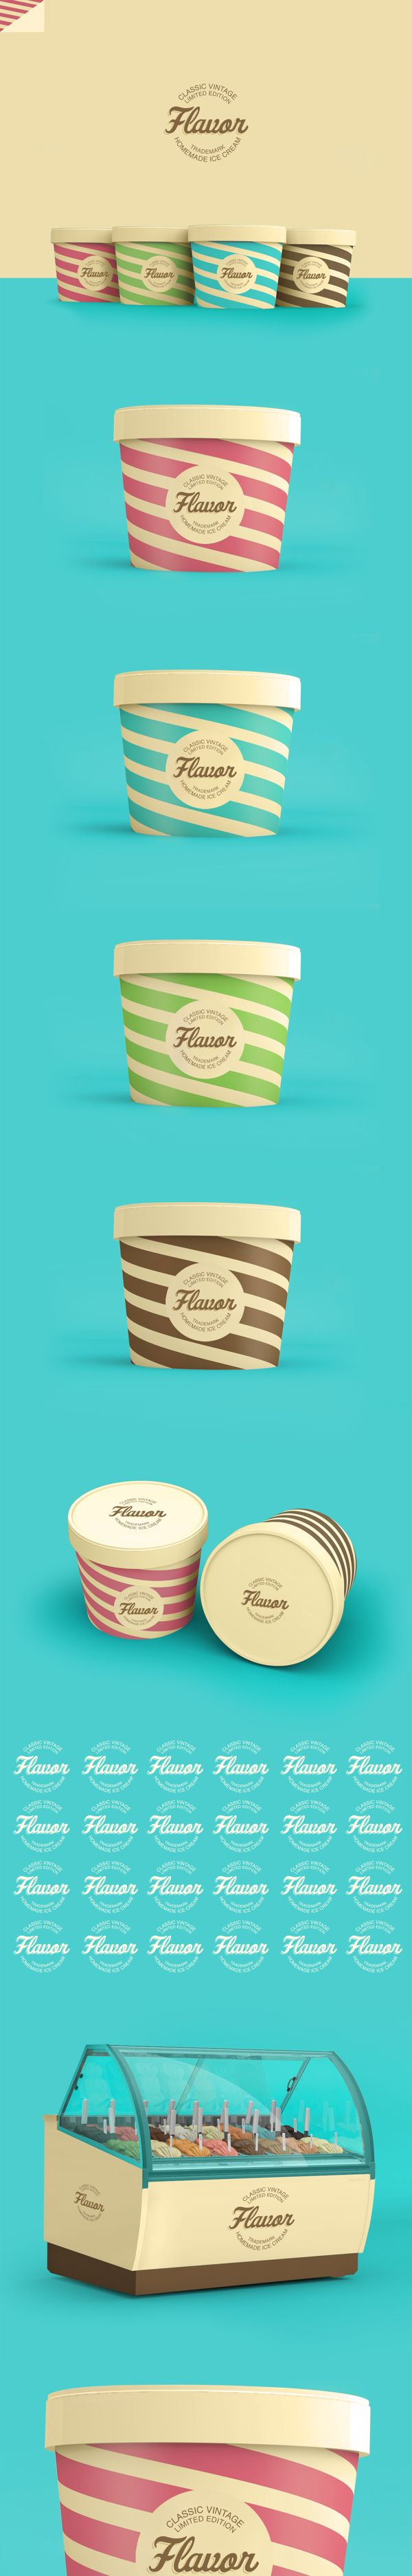 [ fun #packagingdesign + color scheme + simple + appealing ] Flavor Ice Cream Packaging by Renan Vizzotto, via Behance PD